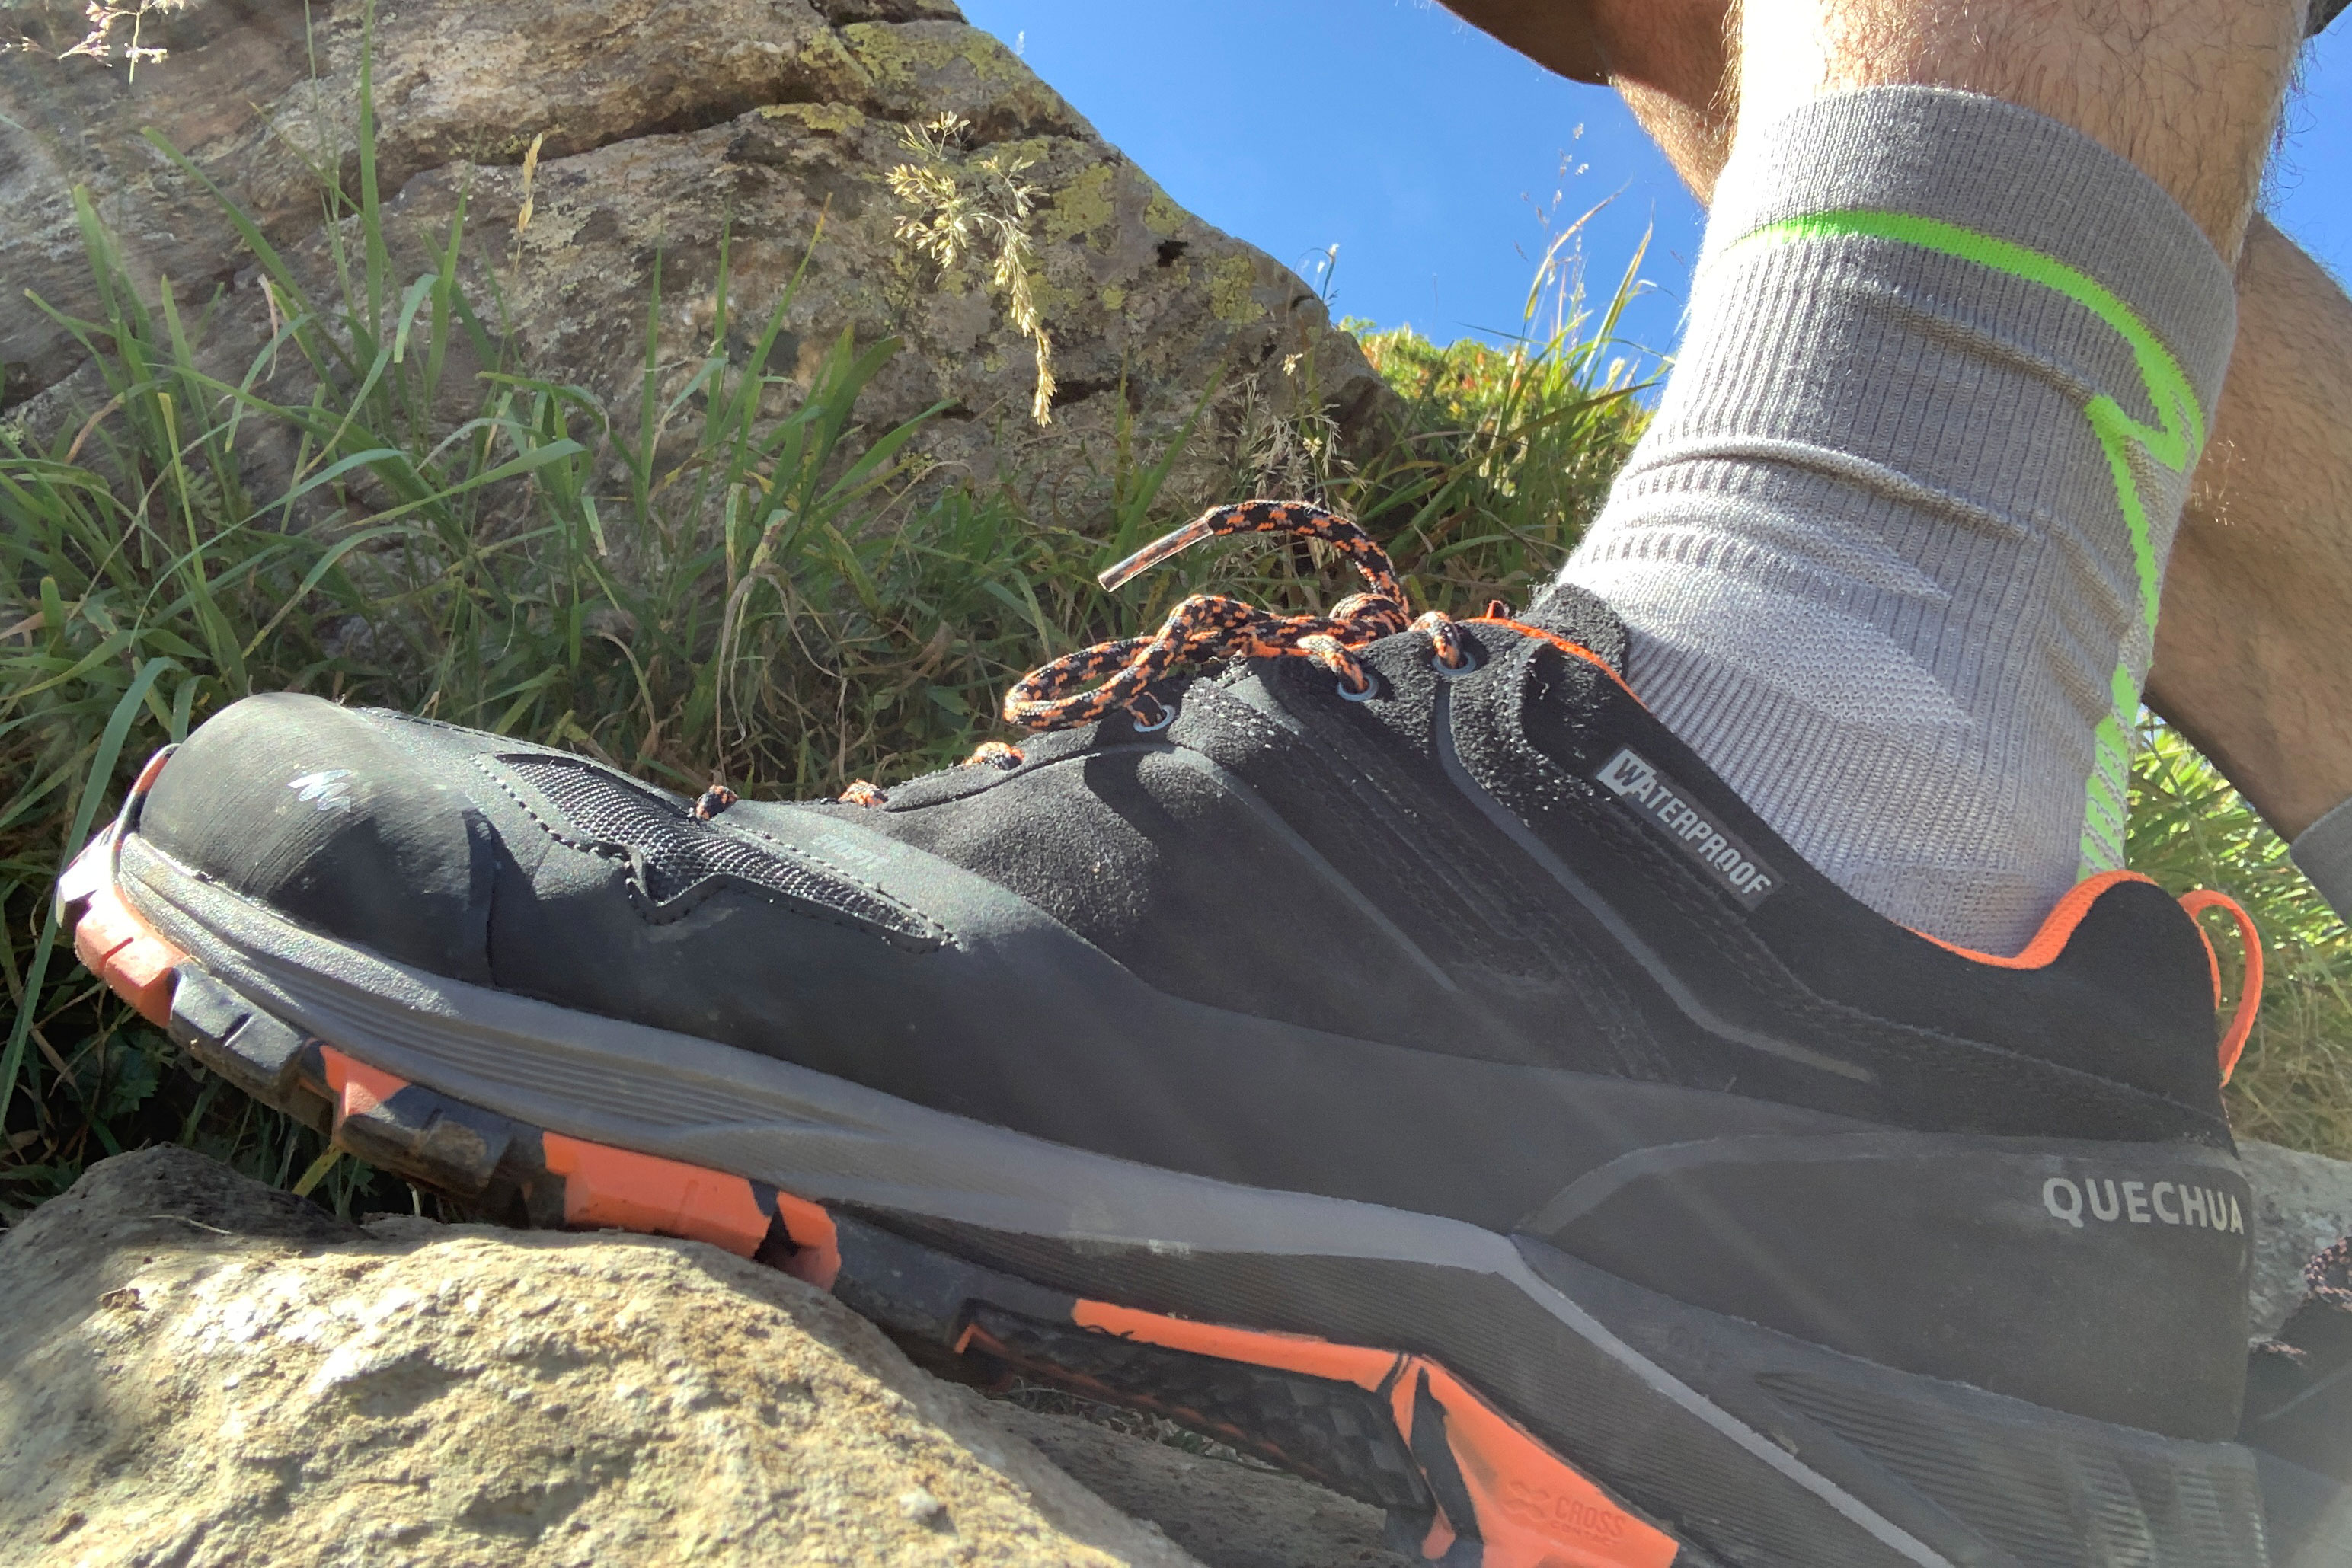 Decathlon Quechua hiking shoe